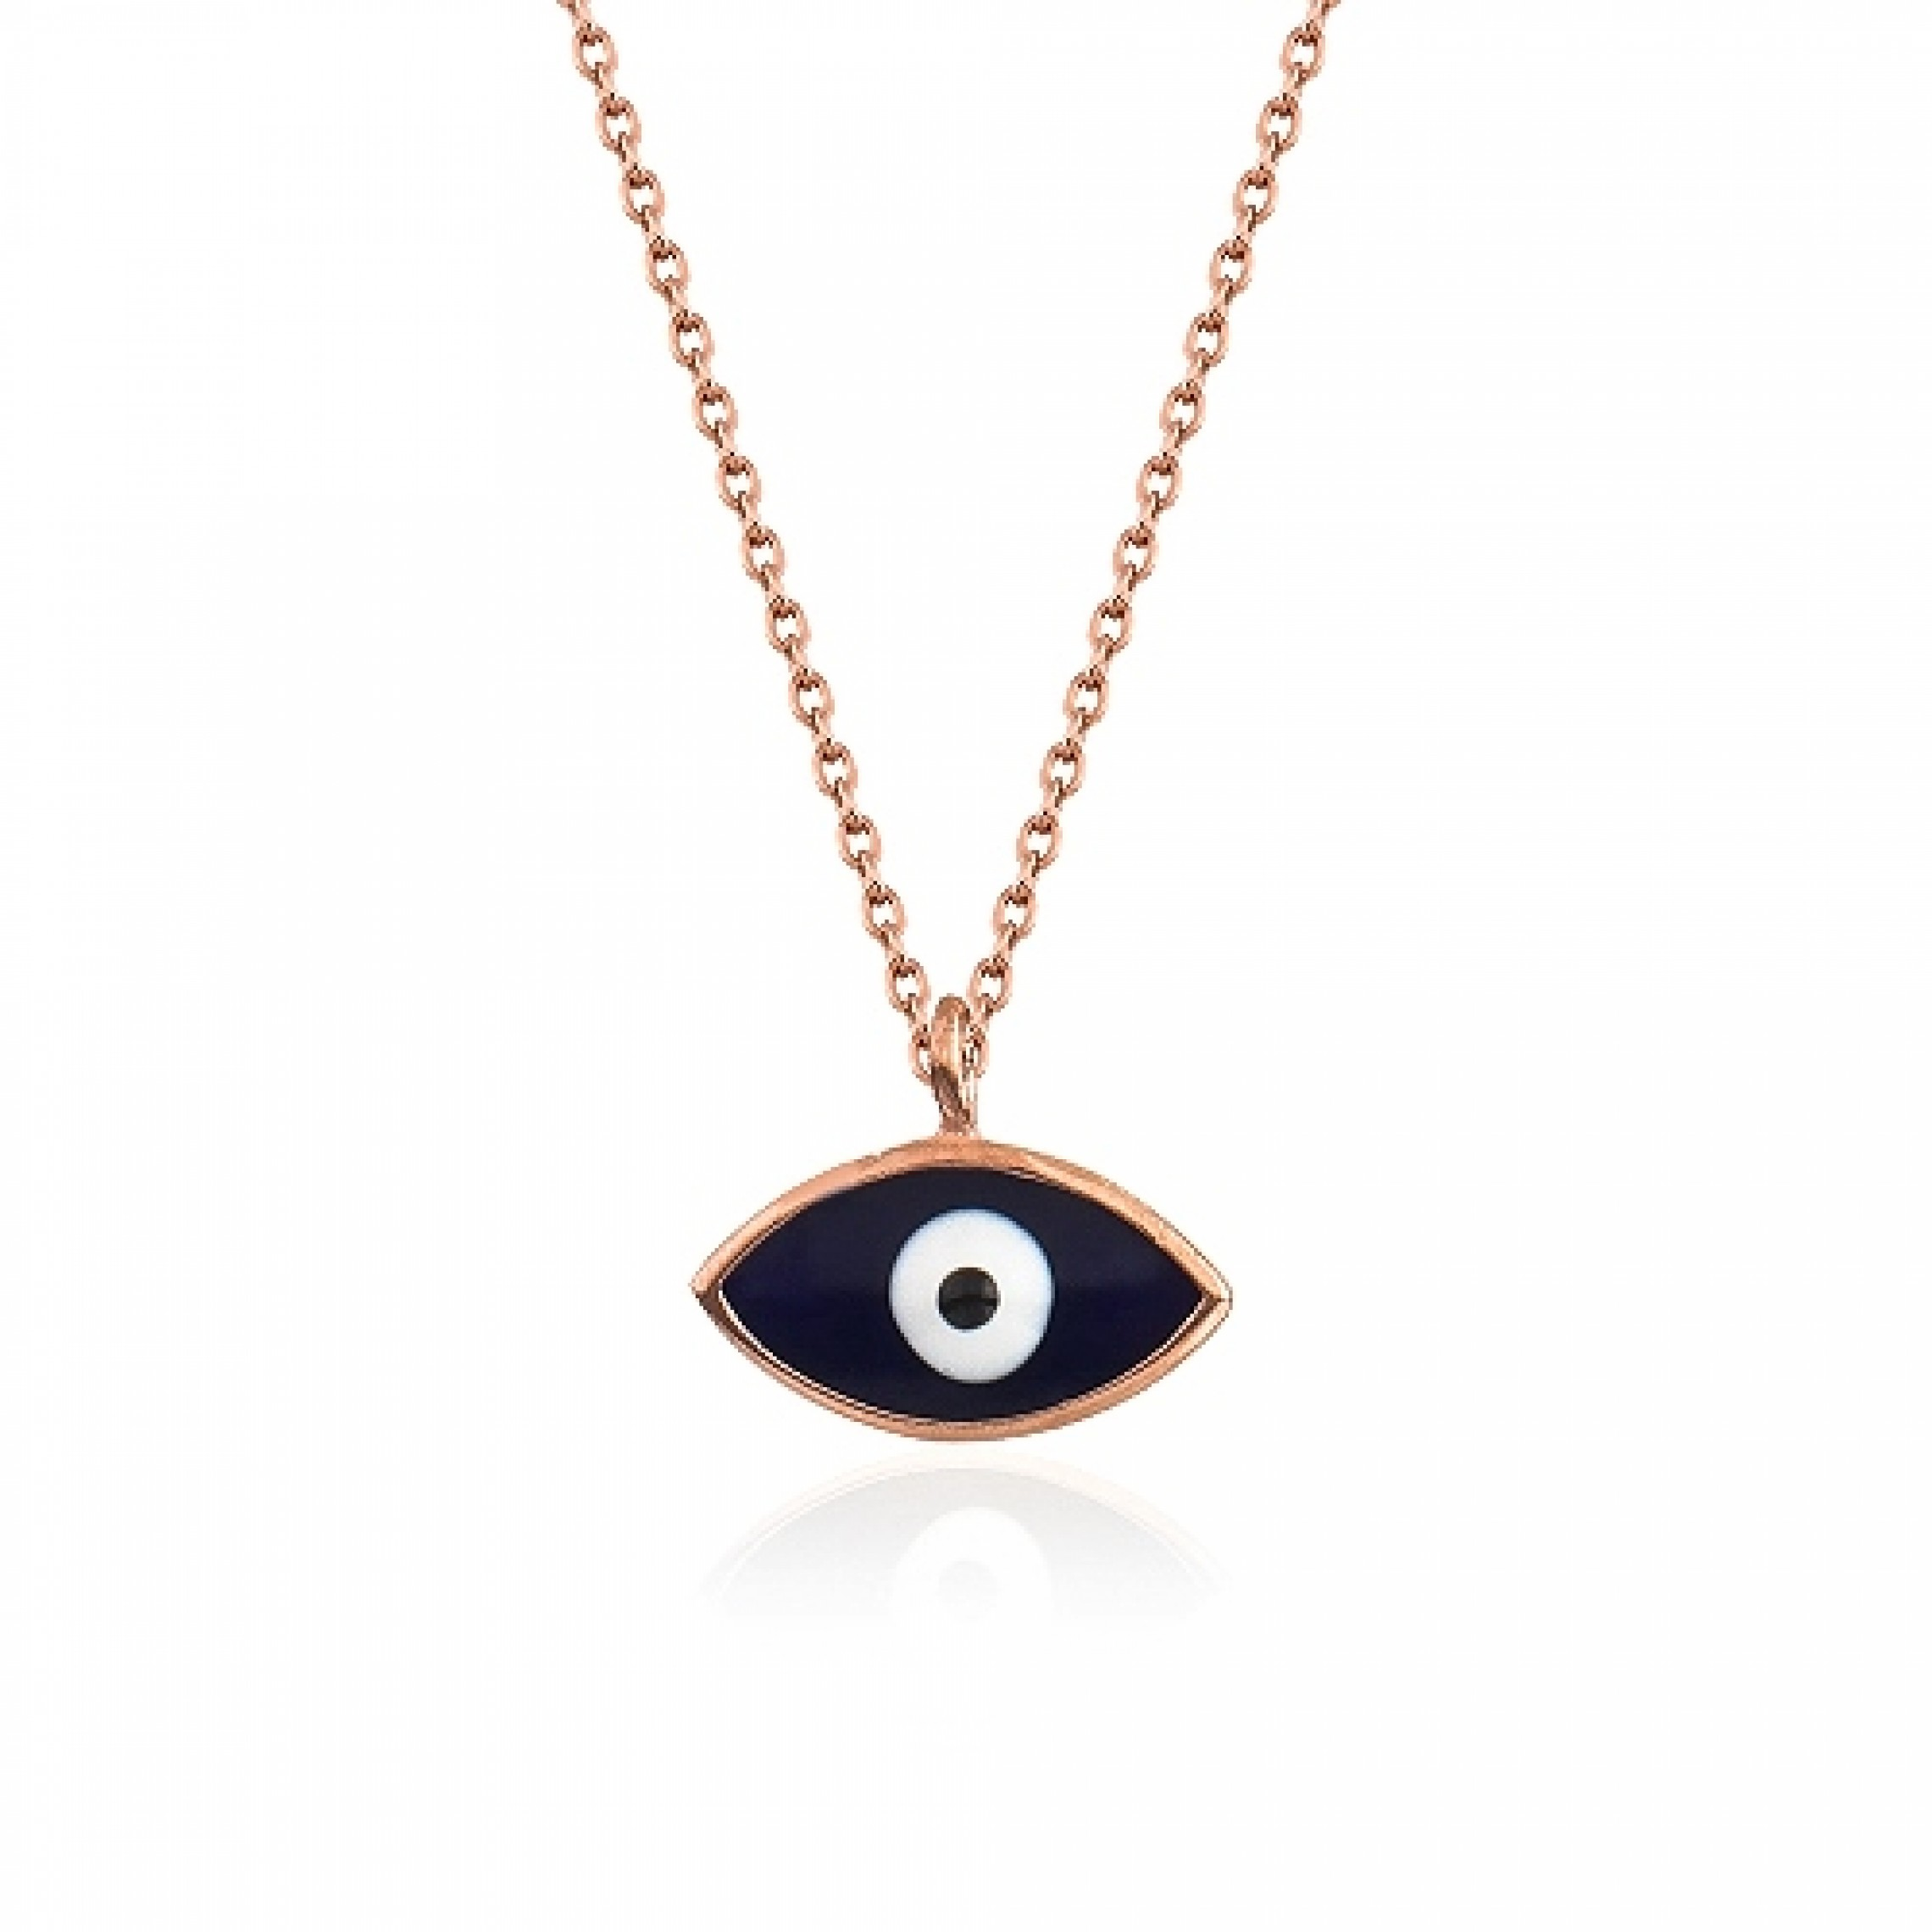 JN-190072 Evil Eye 925 Sterling Silver CZ Necklace Enamel Evil Eyes